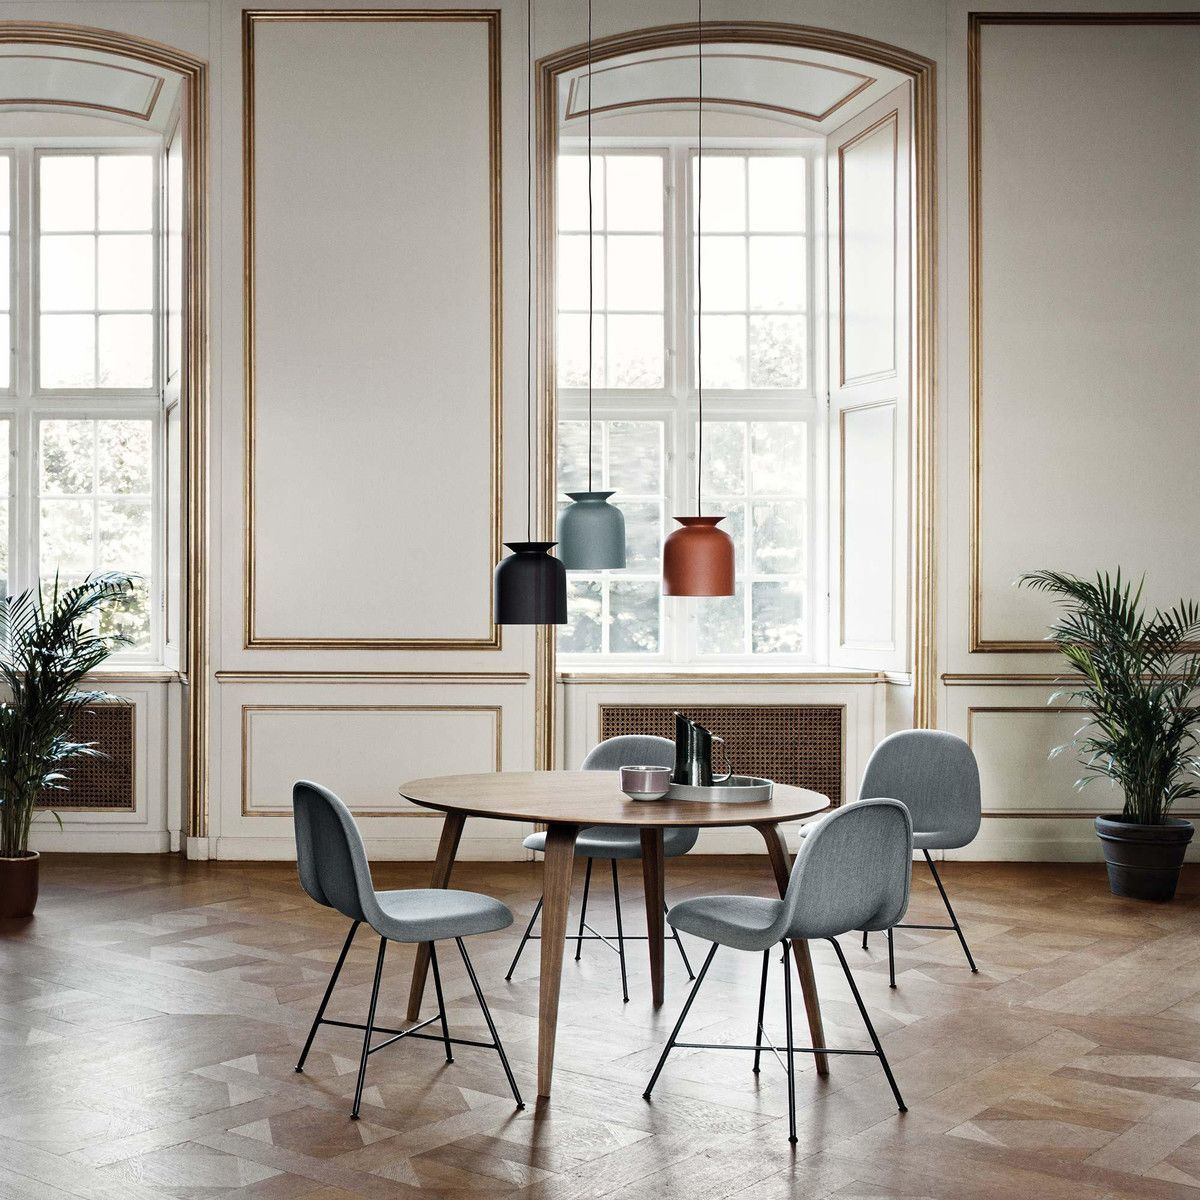 Gubi dining table round gubi for Exclusive esszimmertische